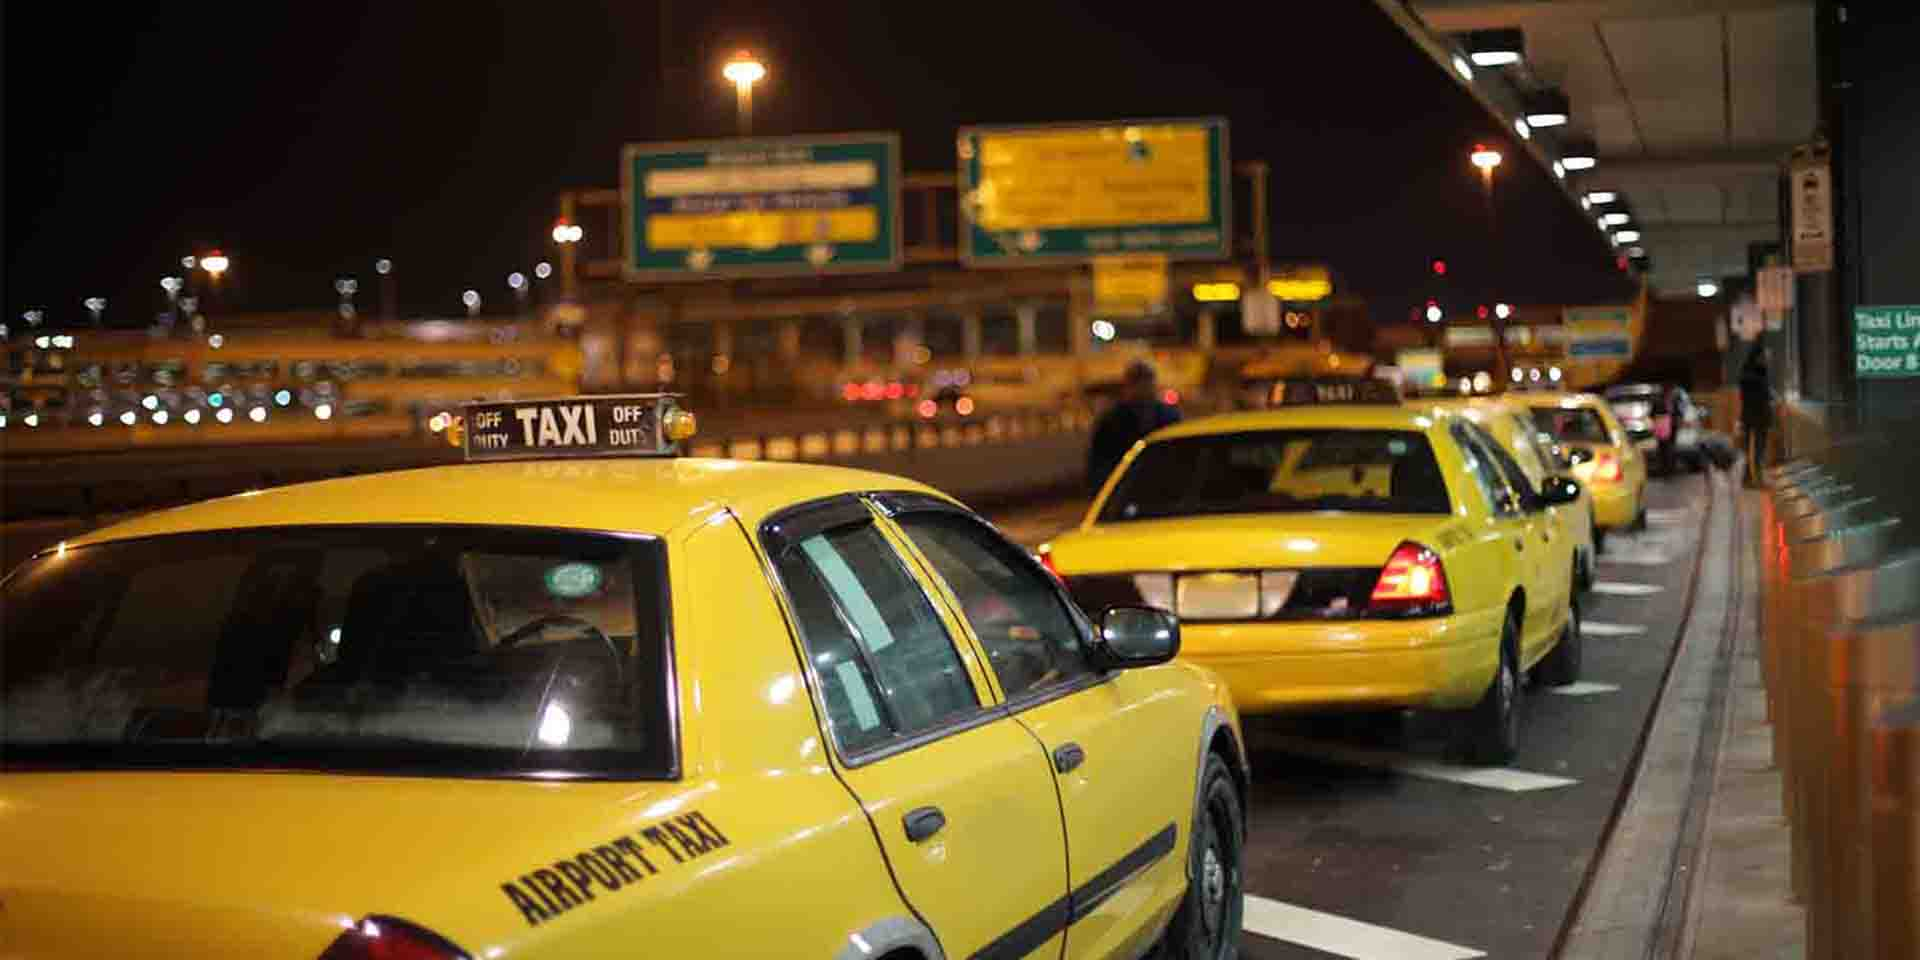 TIP: only use the service of official taxi companies.